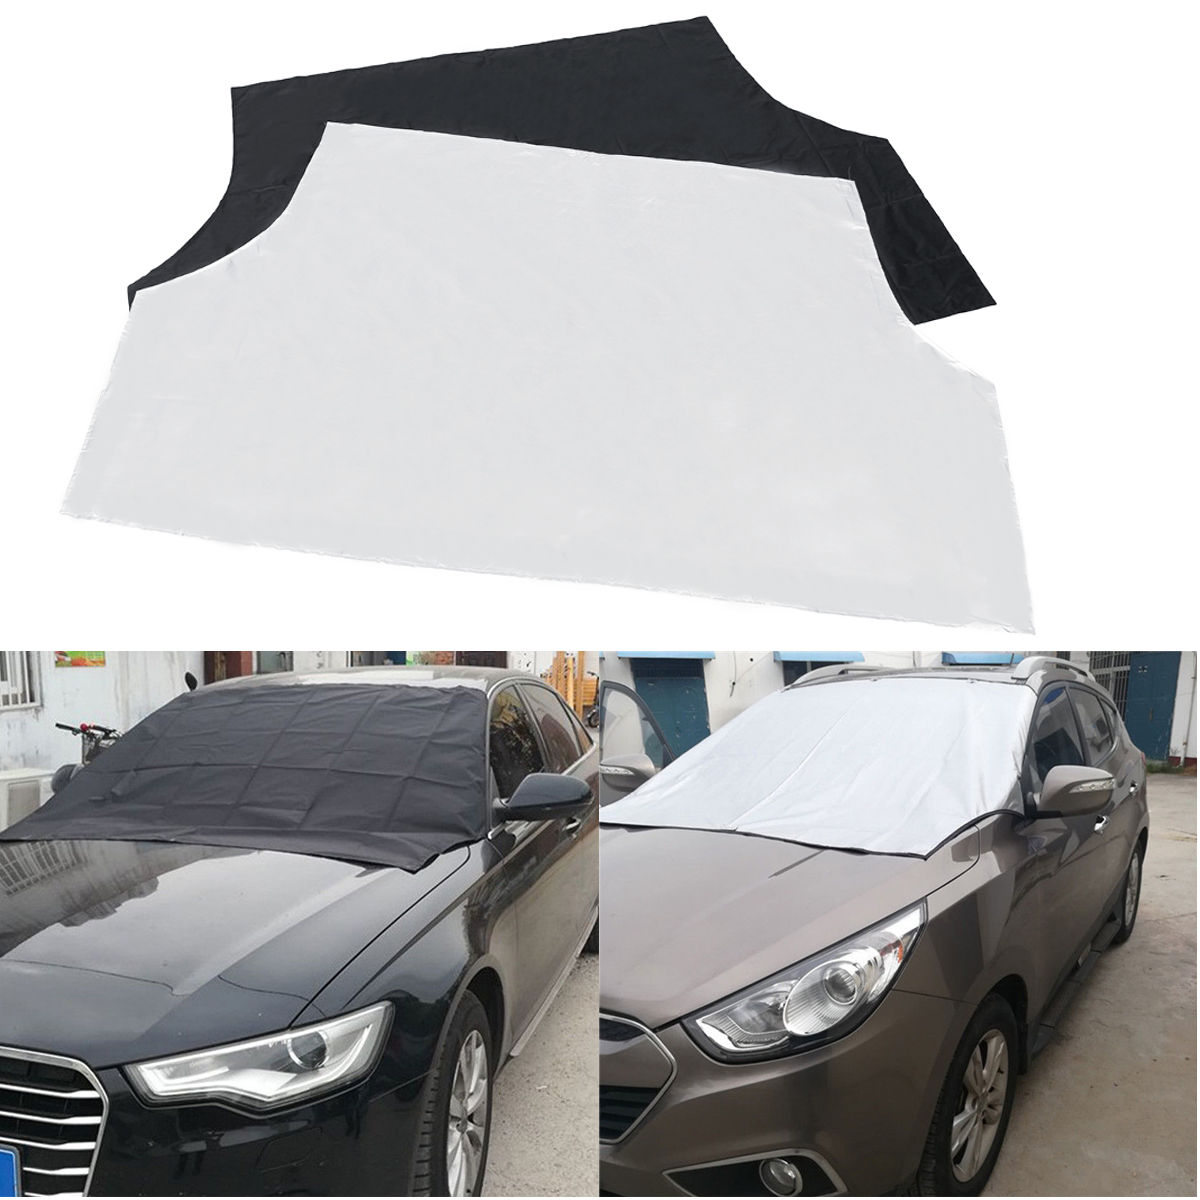 215 x 125cm Car magnet Windshield Snow Ice Frost Sun Cover exterior protection Shield Pouch for Truck Sunshade Cover215 x 125cm Car magnet Windshield Snow Ice Frost Sun Cover exterior protection Shield Pouch for Truck Sunshade Cover